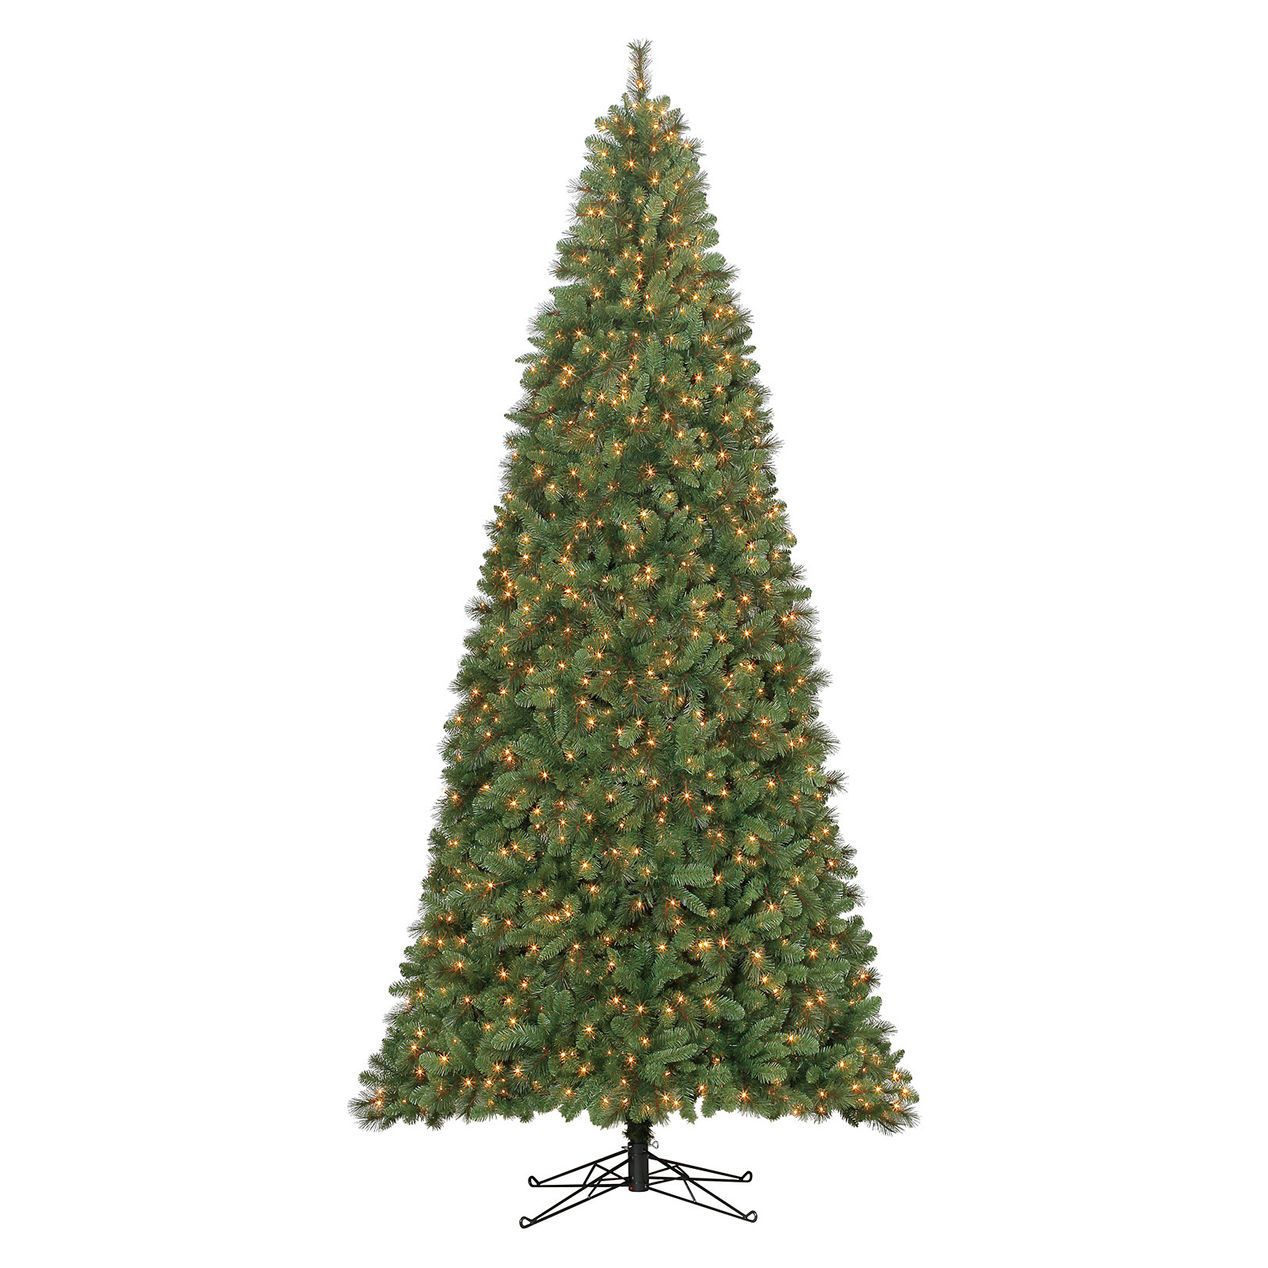 C32 12 Ft Pre Lit Yorkshire Fir Christmas Tree With 1650 Clear Lights With Images Slim Artificial Christmas Trees Artificial Christmas Tree Pre Lit Christmas Tree